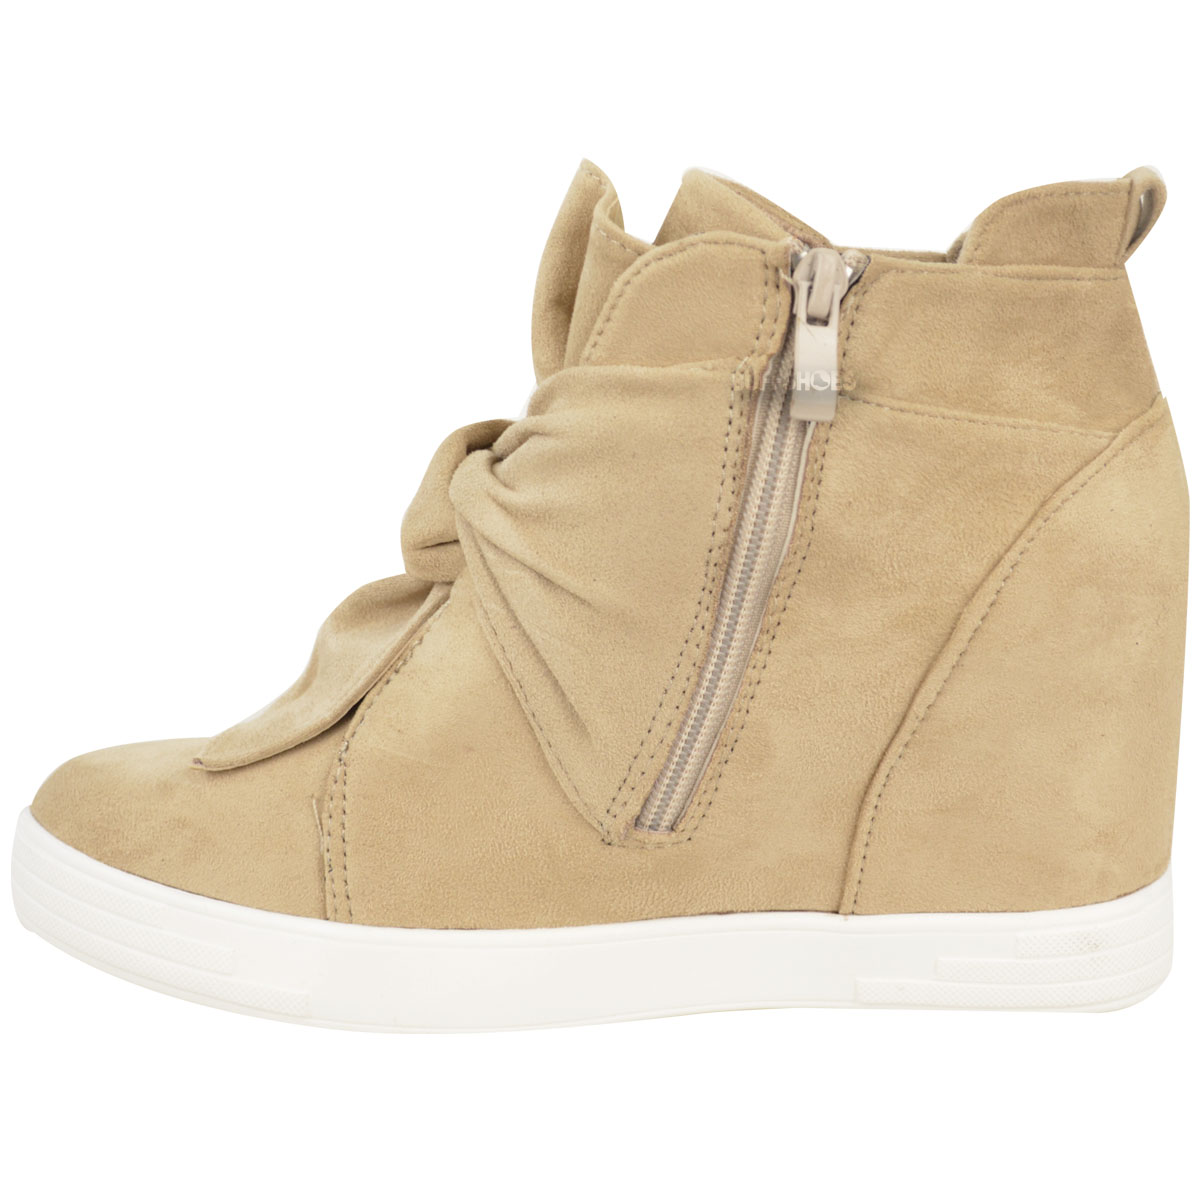 womens mid high heel wedges trainers hi tops bow